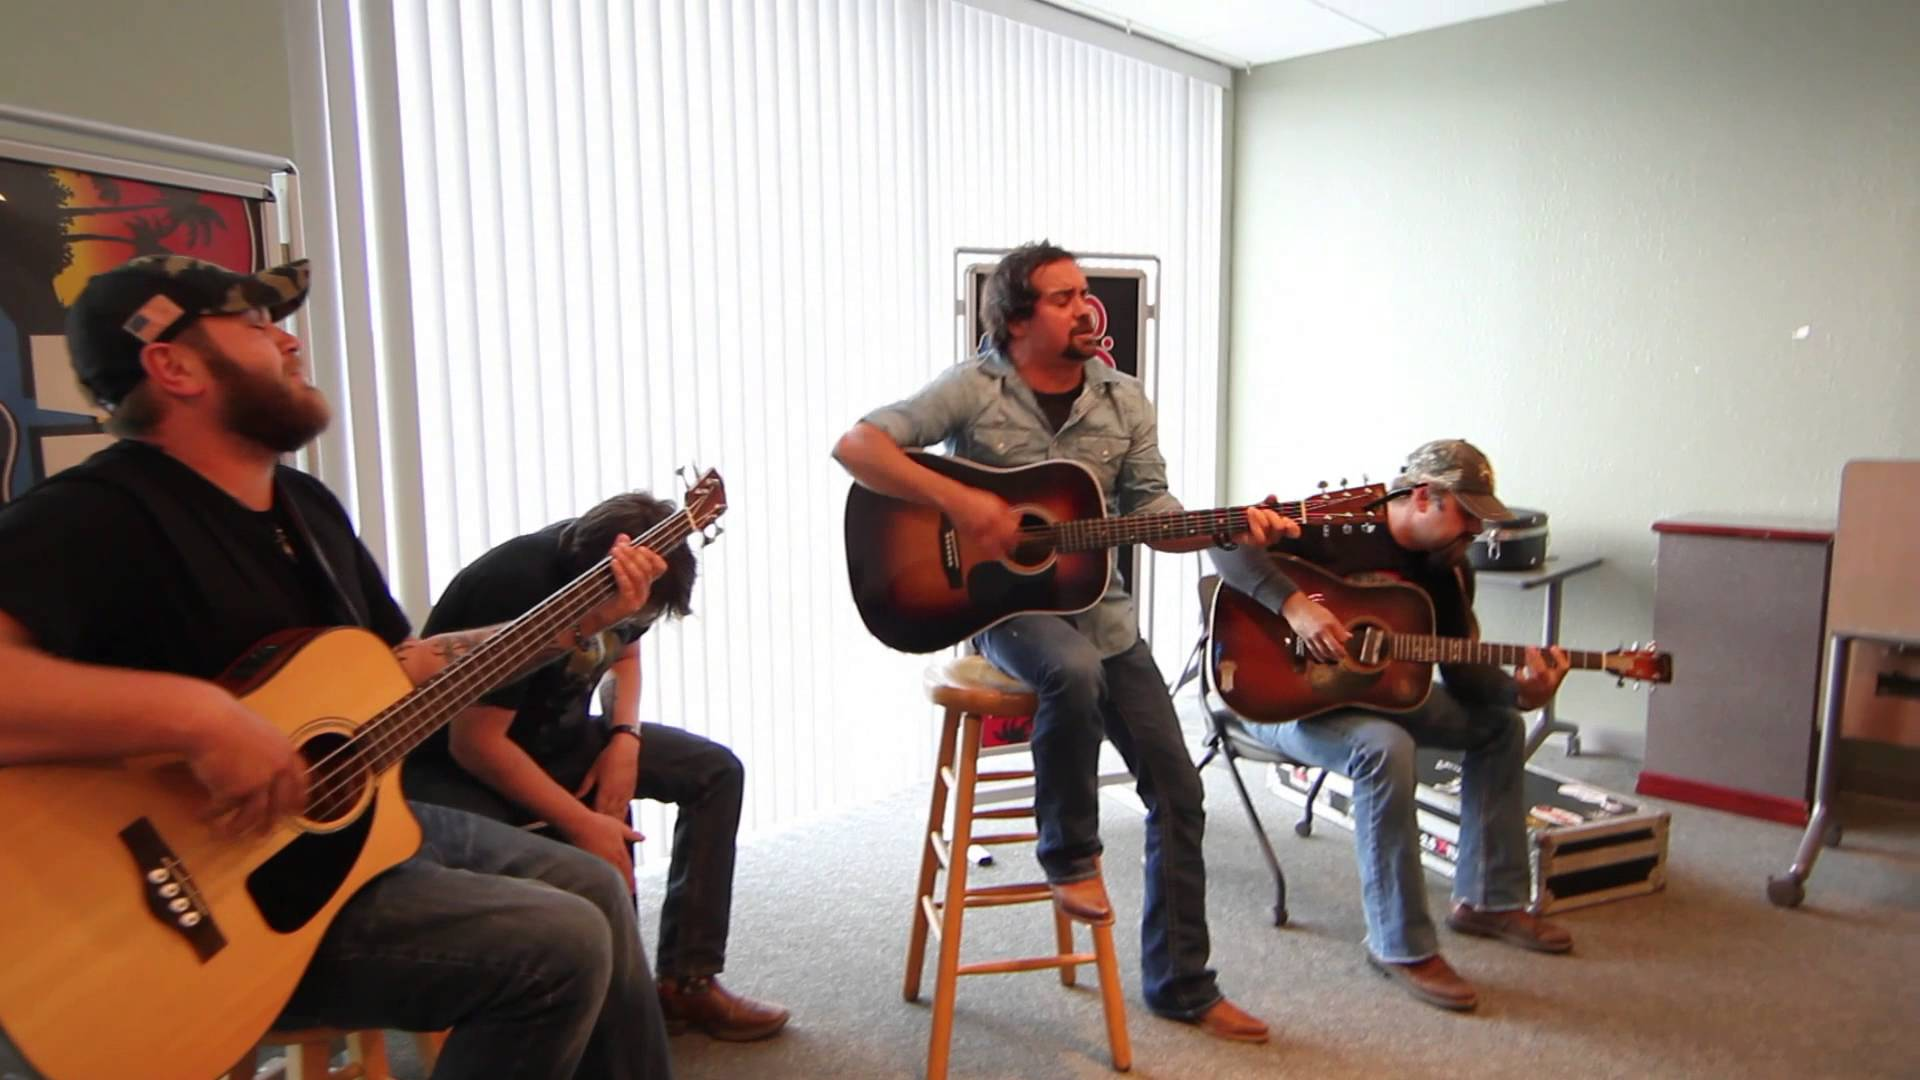 Davisson Brothers Band - Video Gallery - 006 - 2014